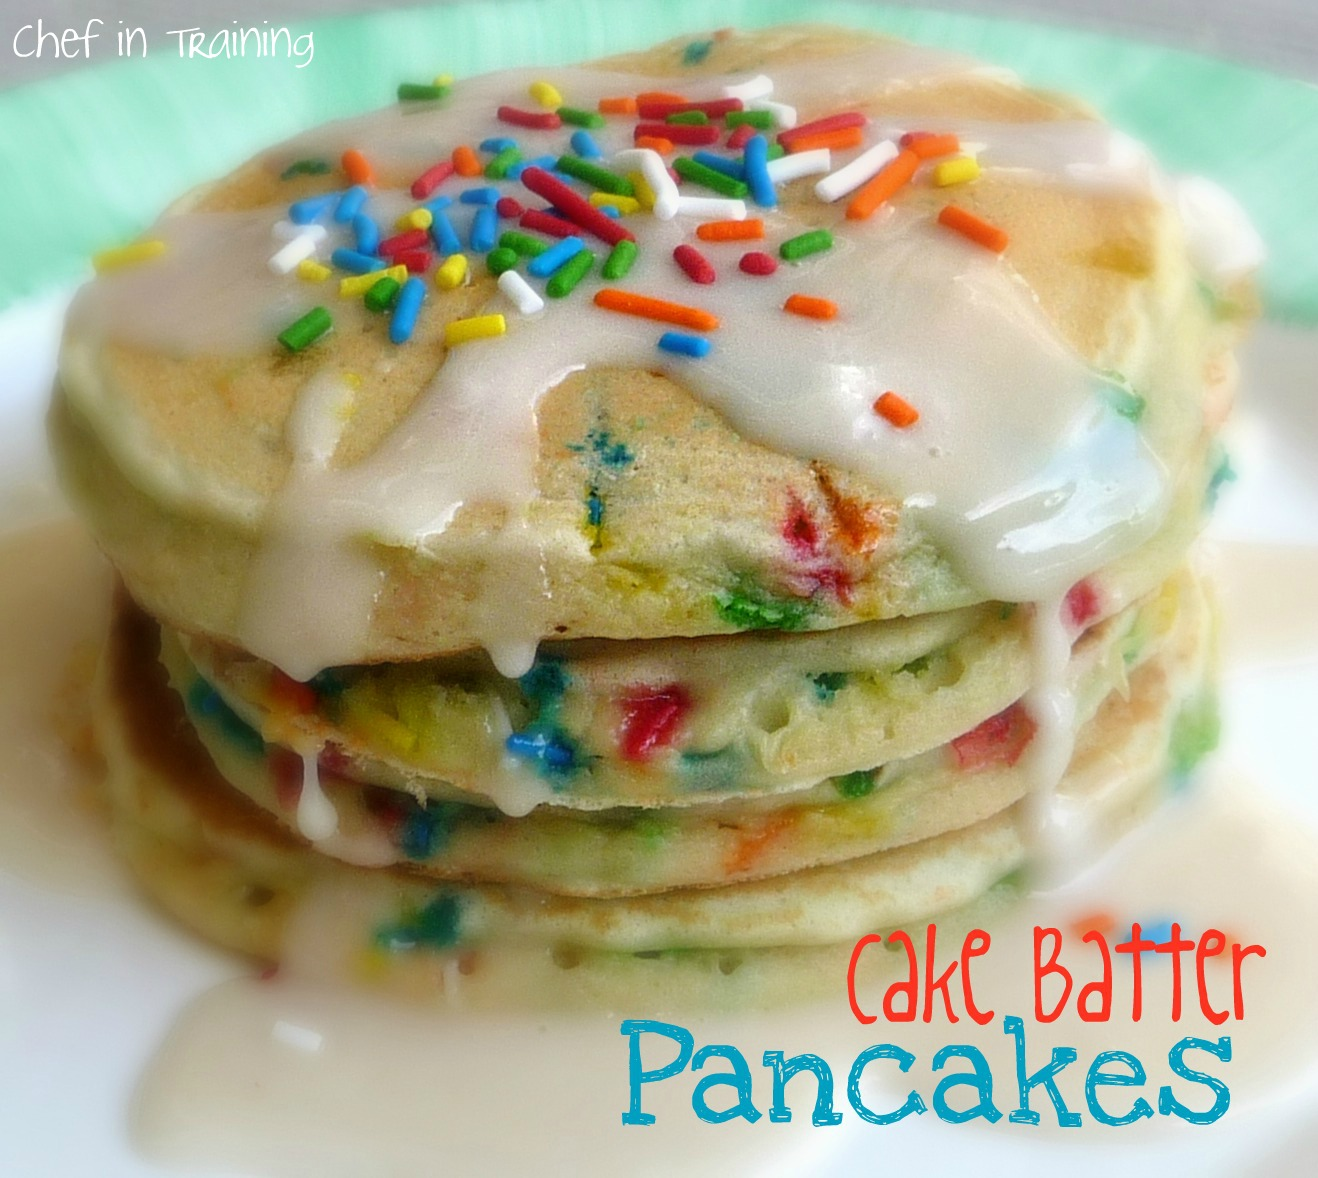 Cake Batter Pancakes - Chef in Training